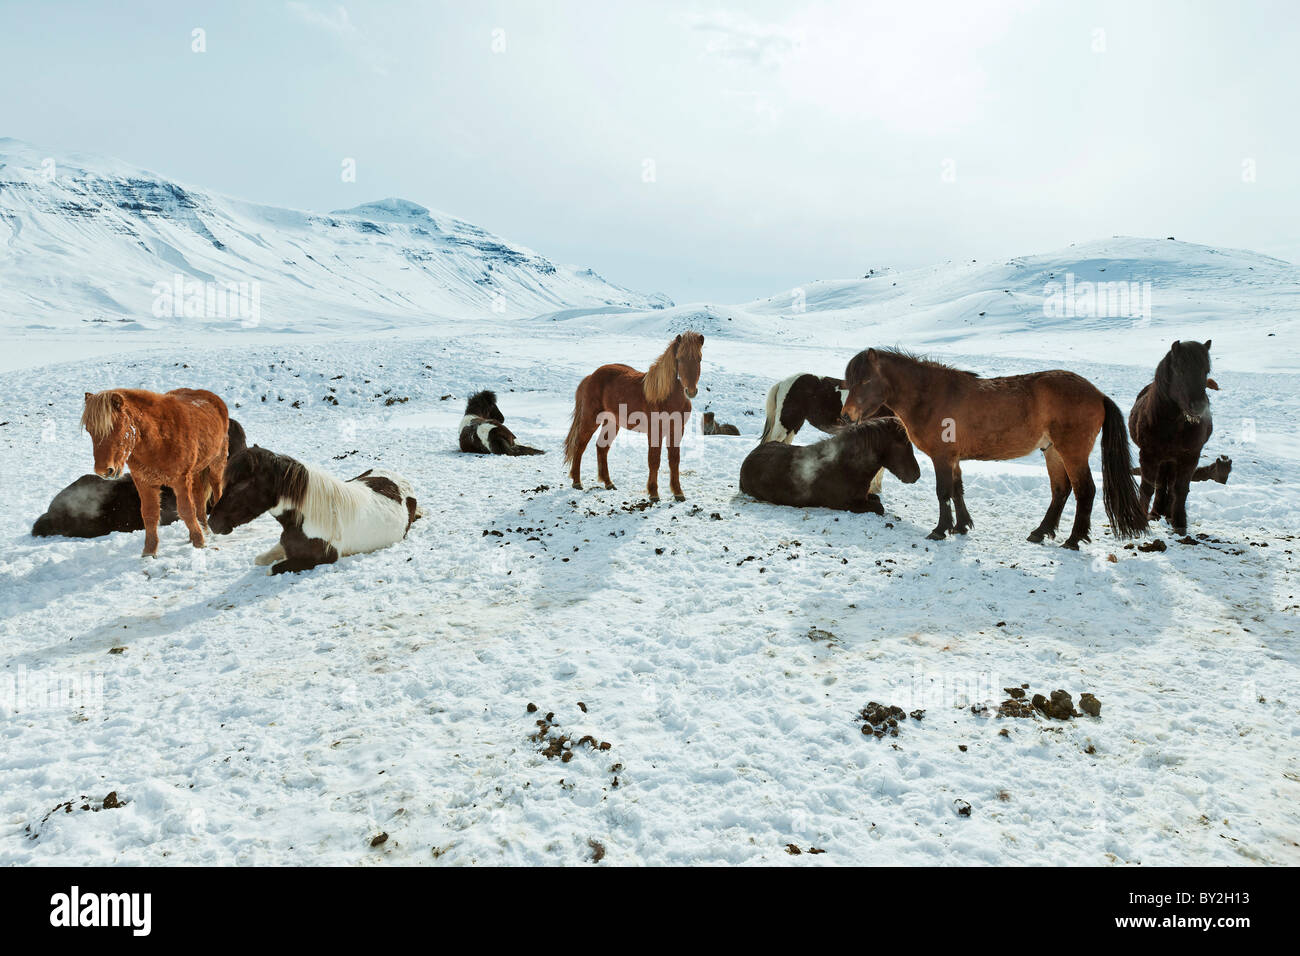 A herd of free-roaming Icelandic horses in the wintertime - Stock Image